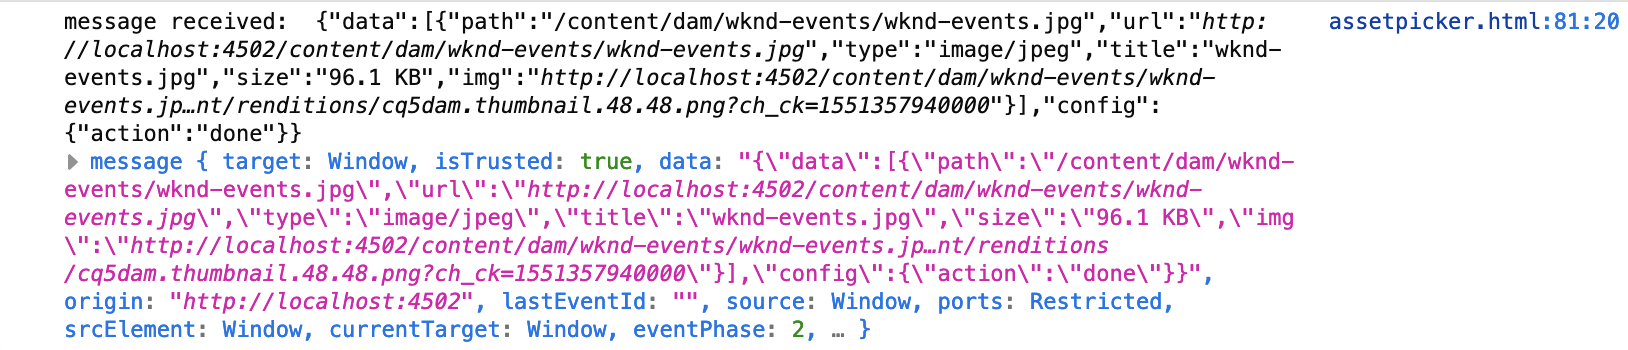 Web developer console with received event data from Asset Selector